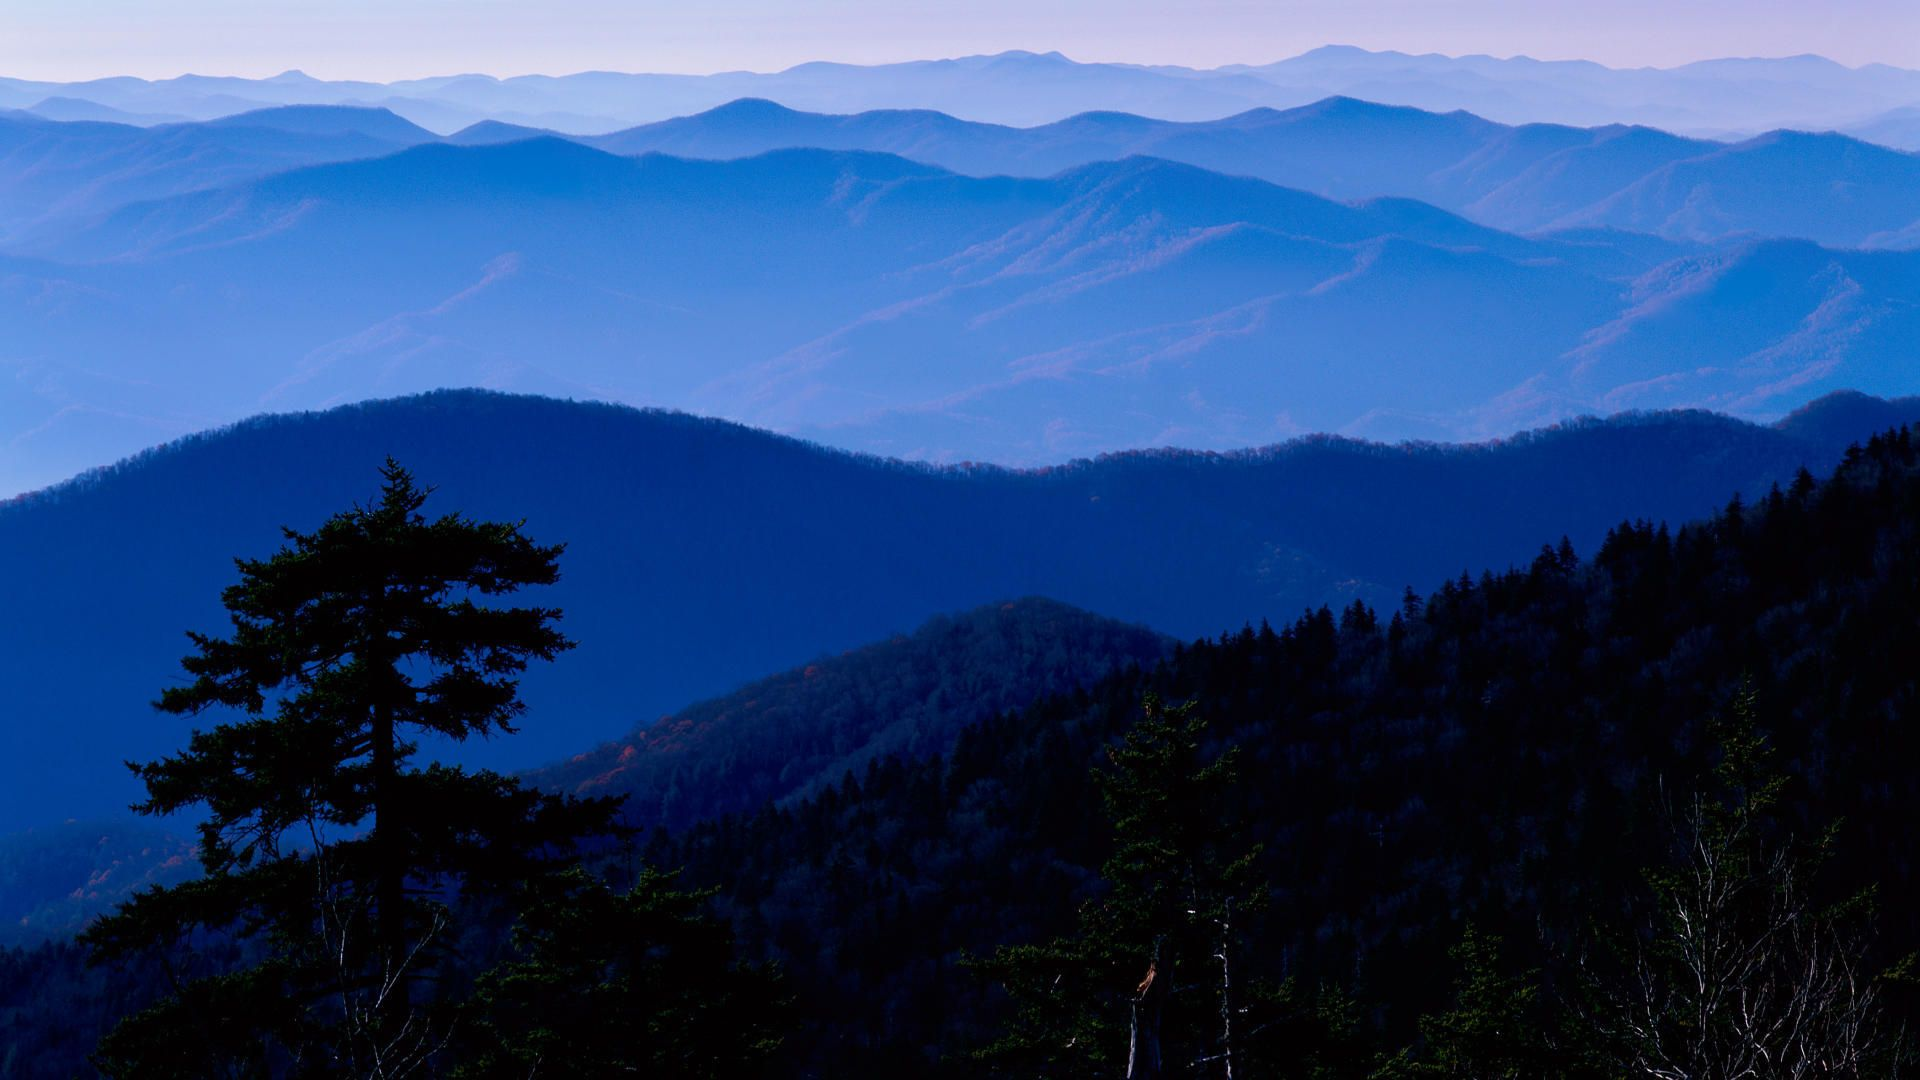 Great Smoky Mountains National Park Wallpaper Smokey Mountains National Park Great Smoky Mountains National Park Smoky Mountain National Park